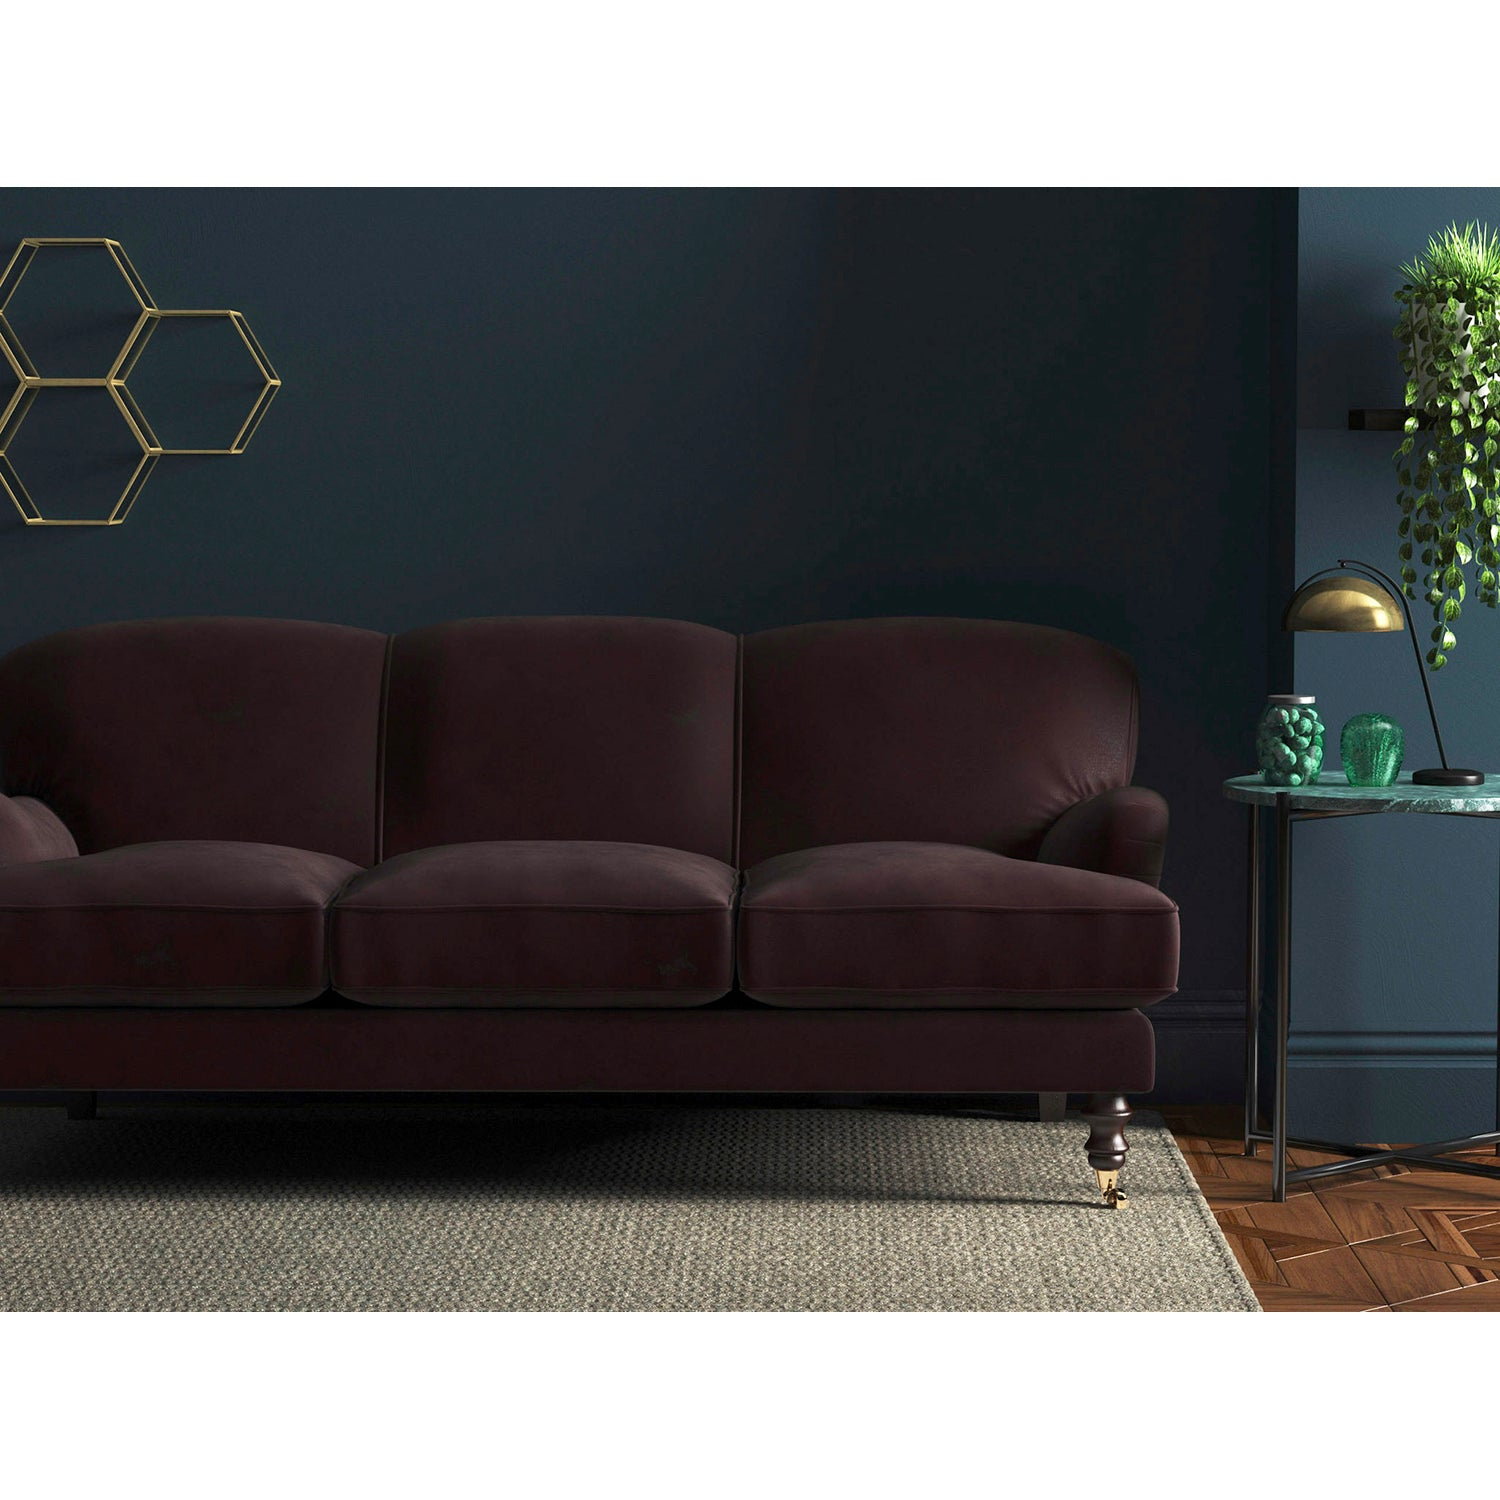 Dark purple velvet sofa with a stain resistant finish